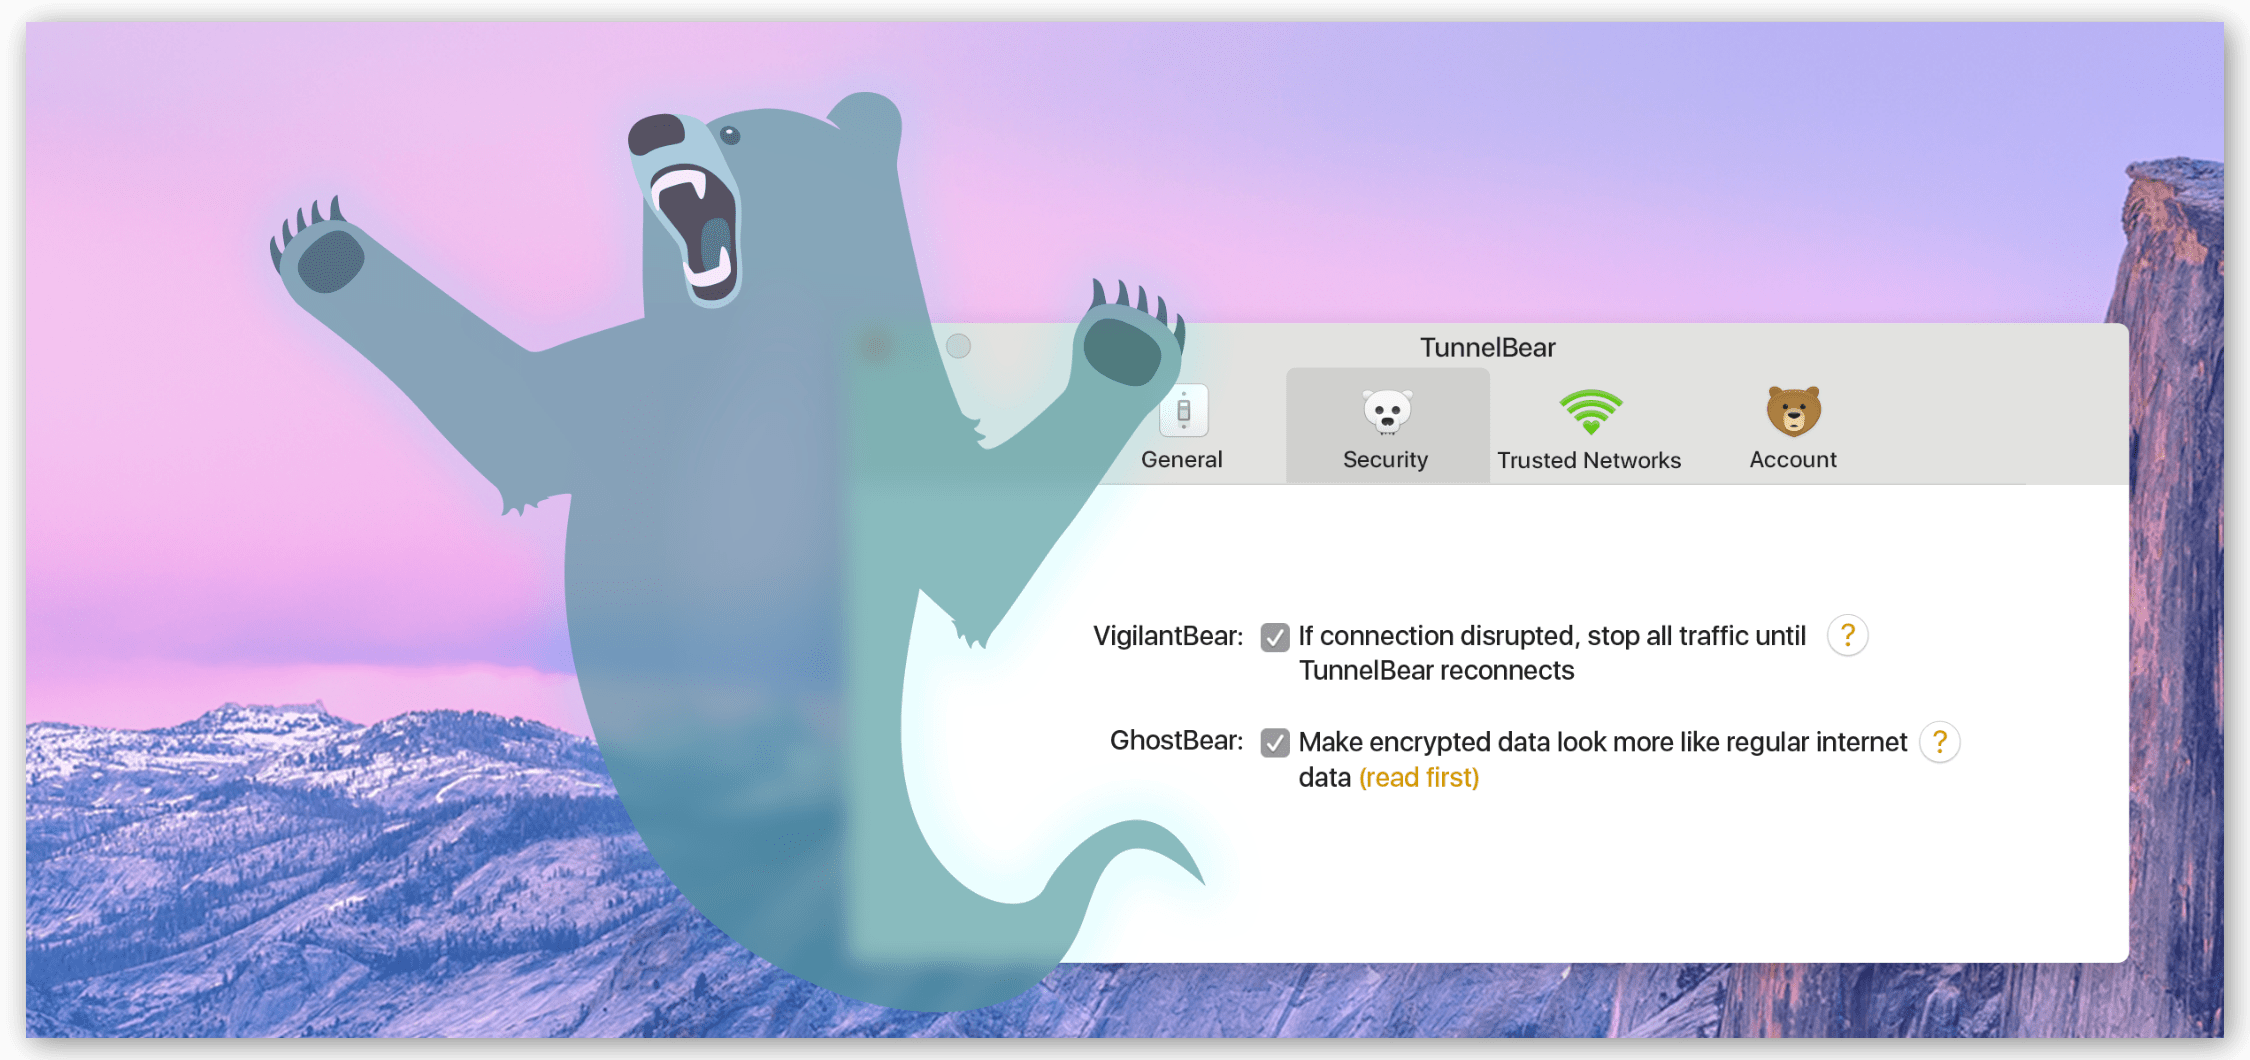 TunnelBear Websitte提供的TunnelBear GhostBear模式的屏幕截图